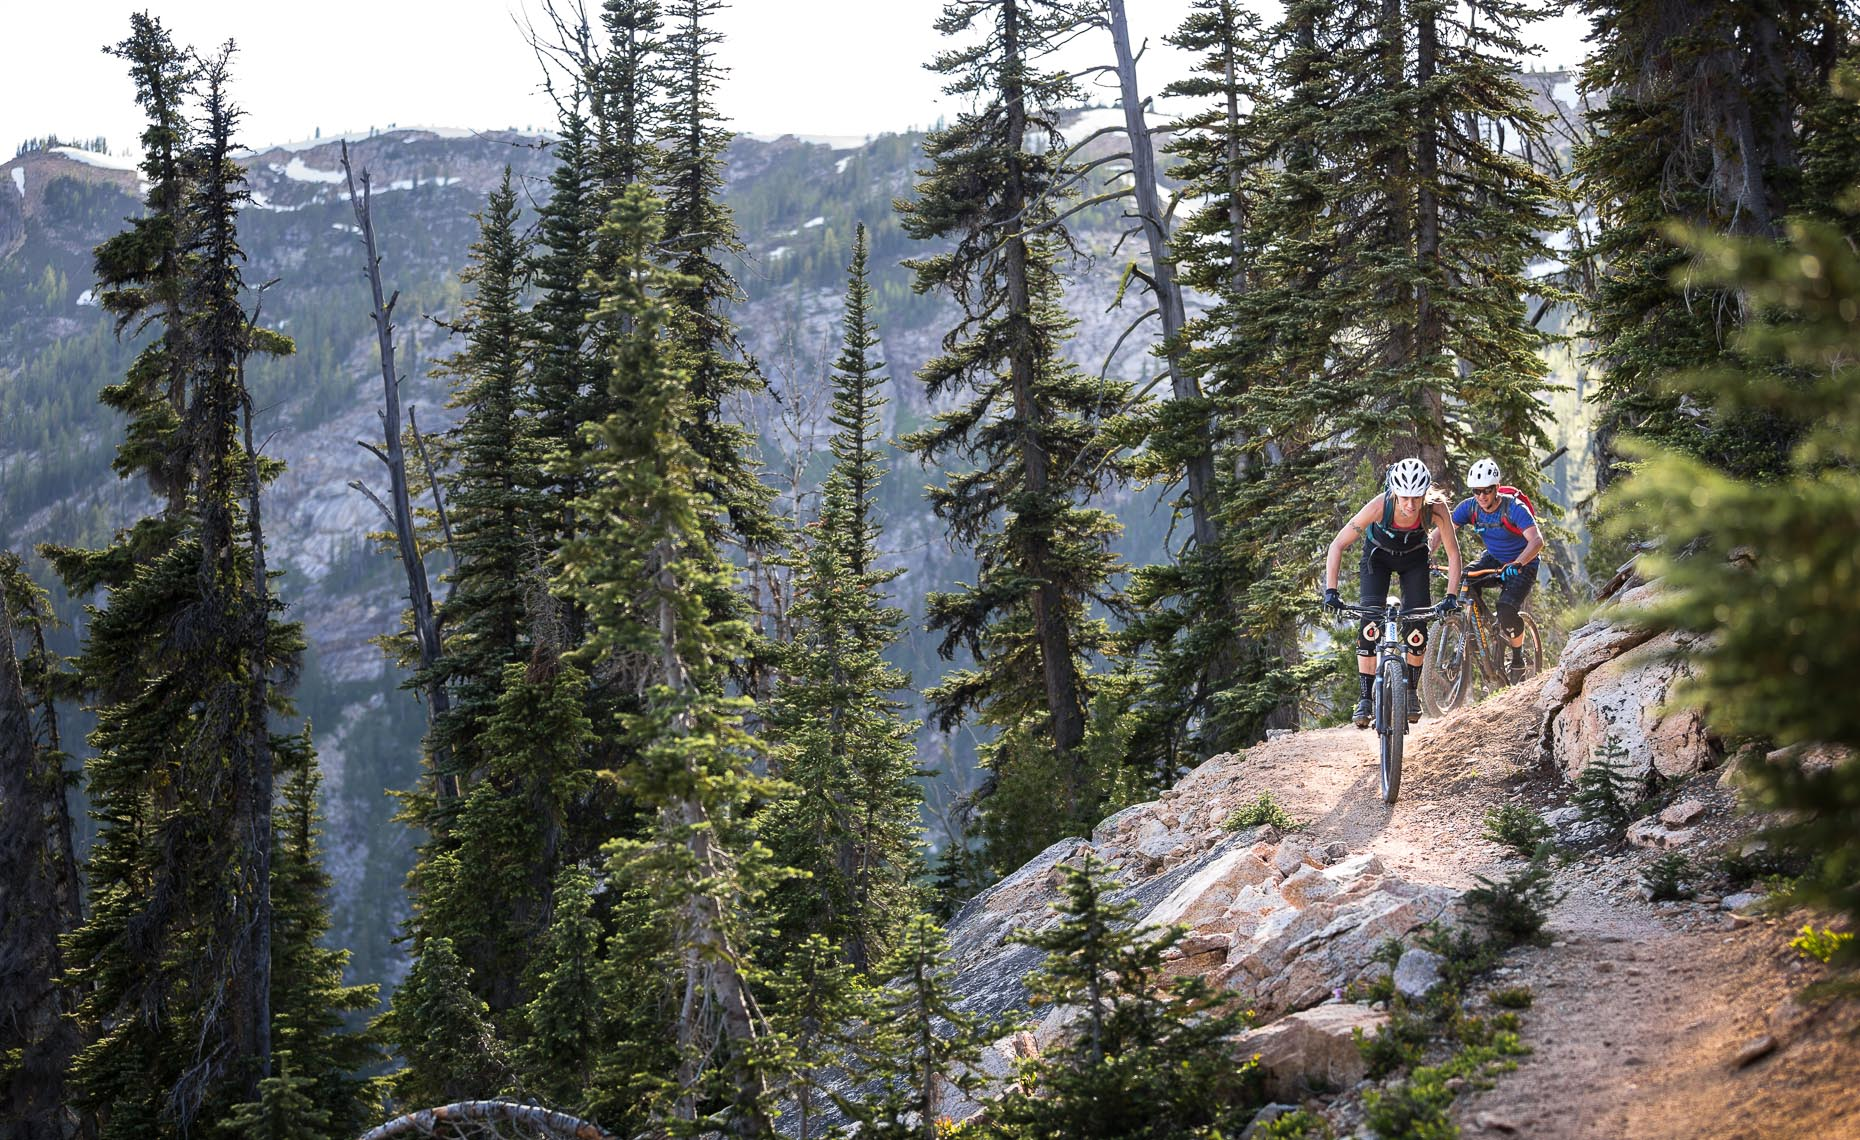 Female mountain biking in the forest and mountains of bc